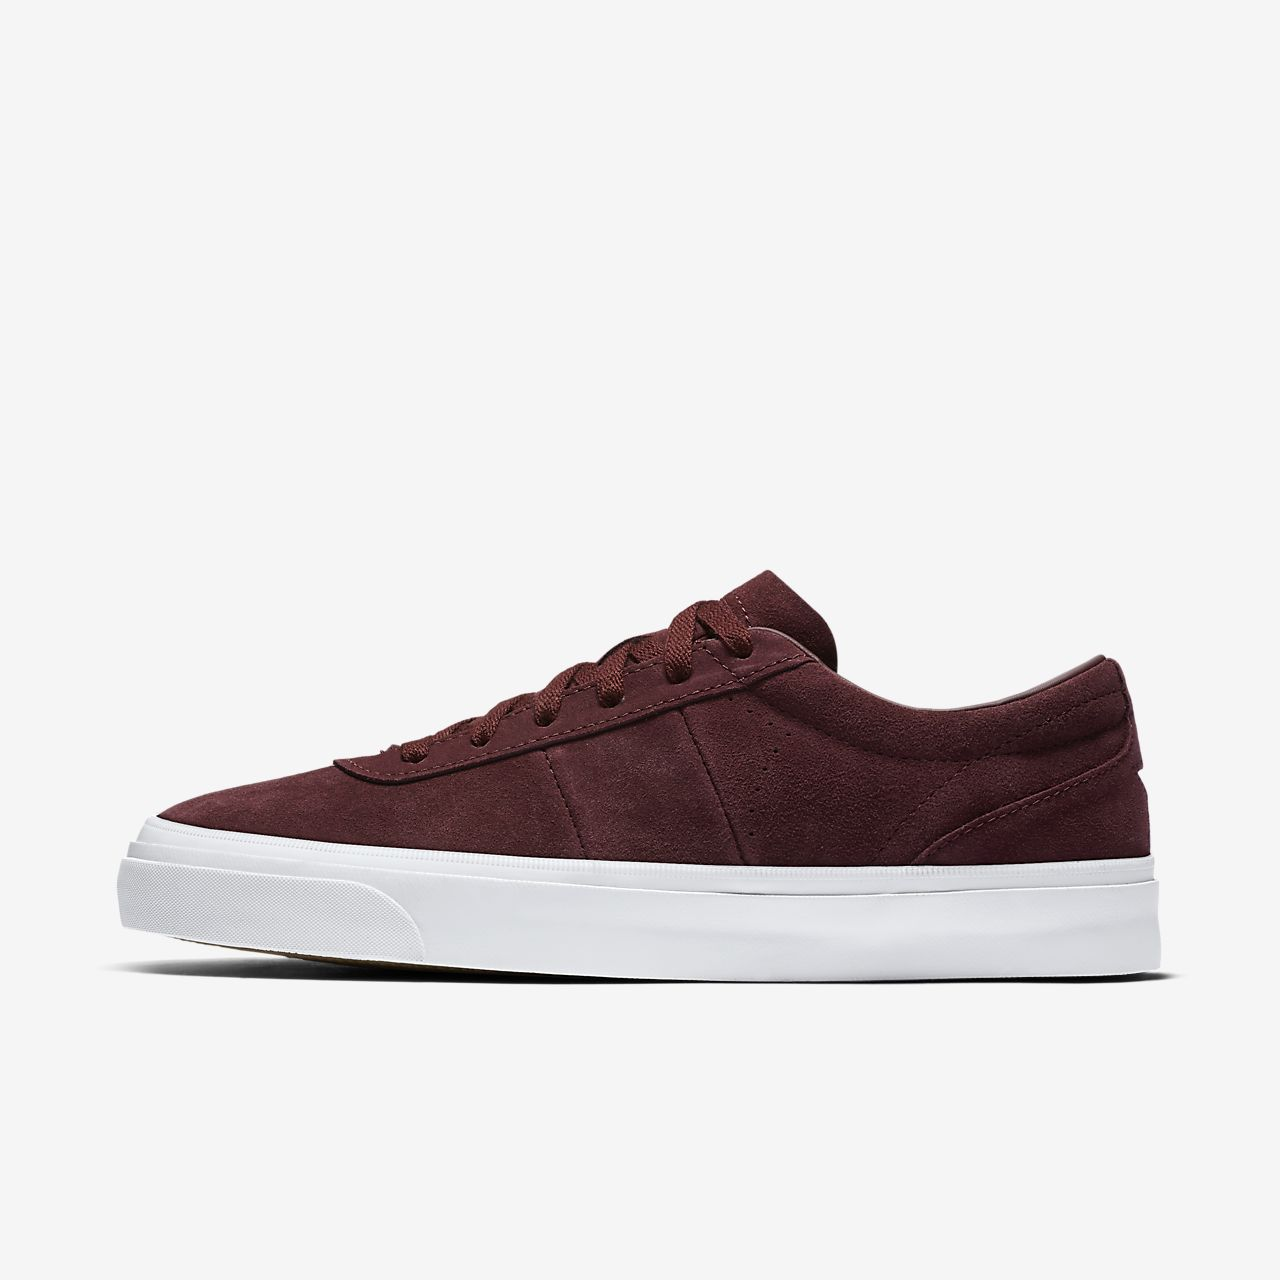 Converse One Star CC Low Top Men's Skateboarding Shoe